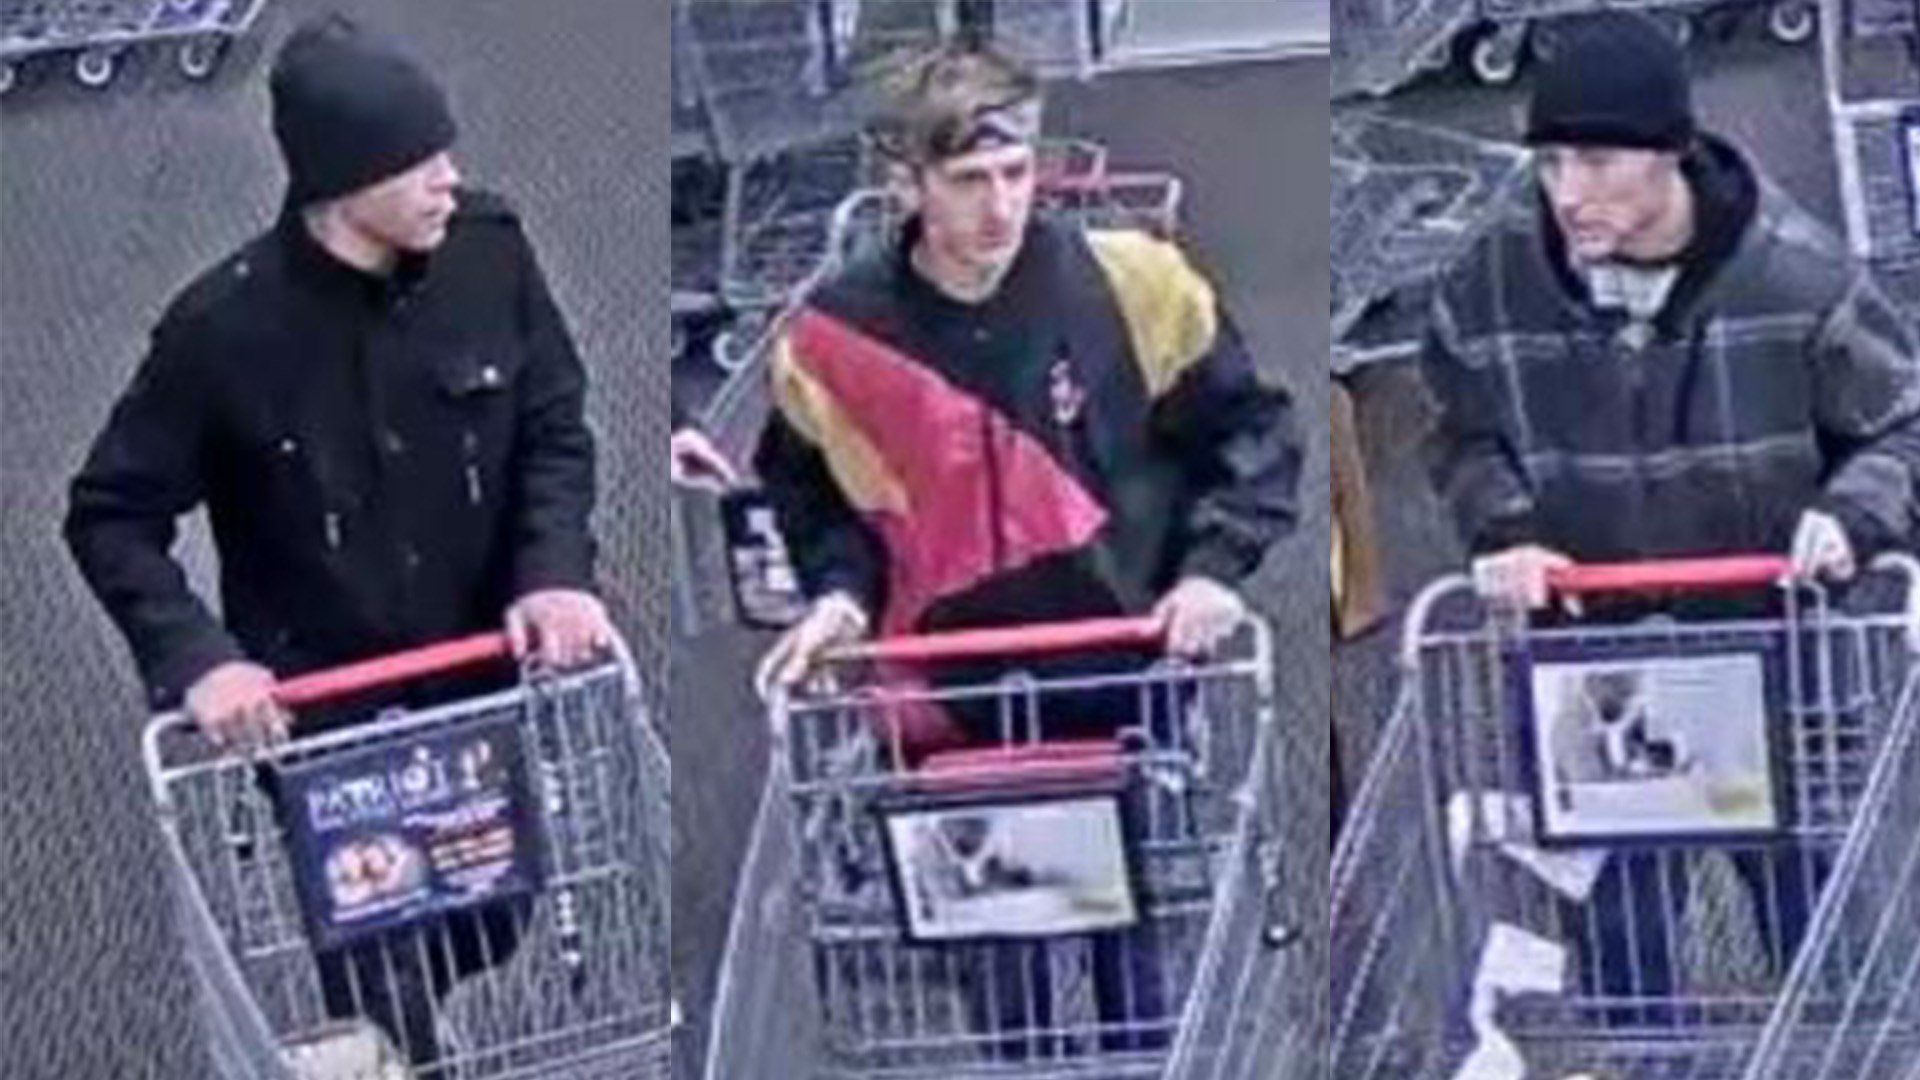 El Paso County Sheriff's deputies are looking for three men who they say stole $1,600 in groceries from a King Soopers store off Constitution Ave.